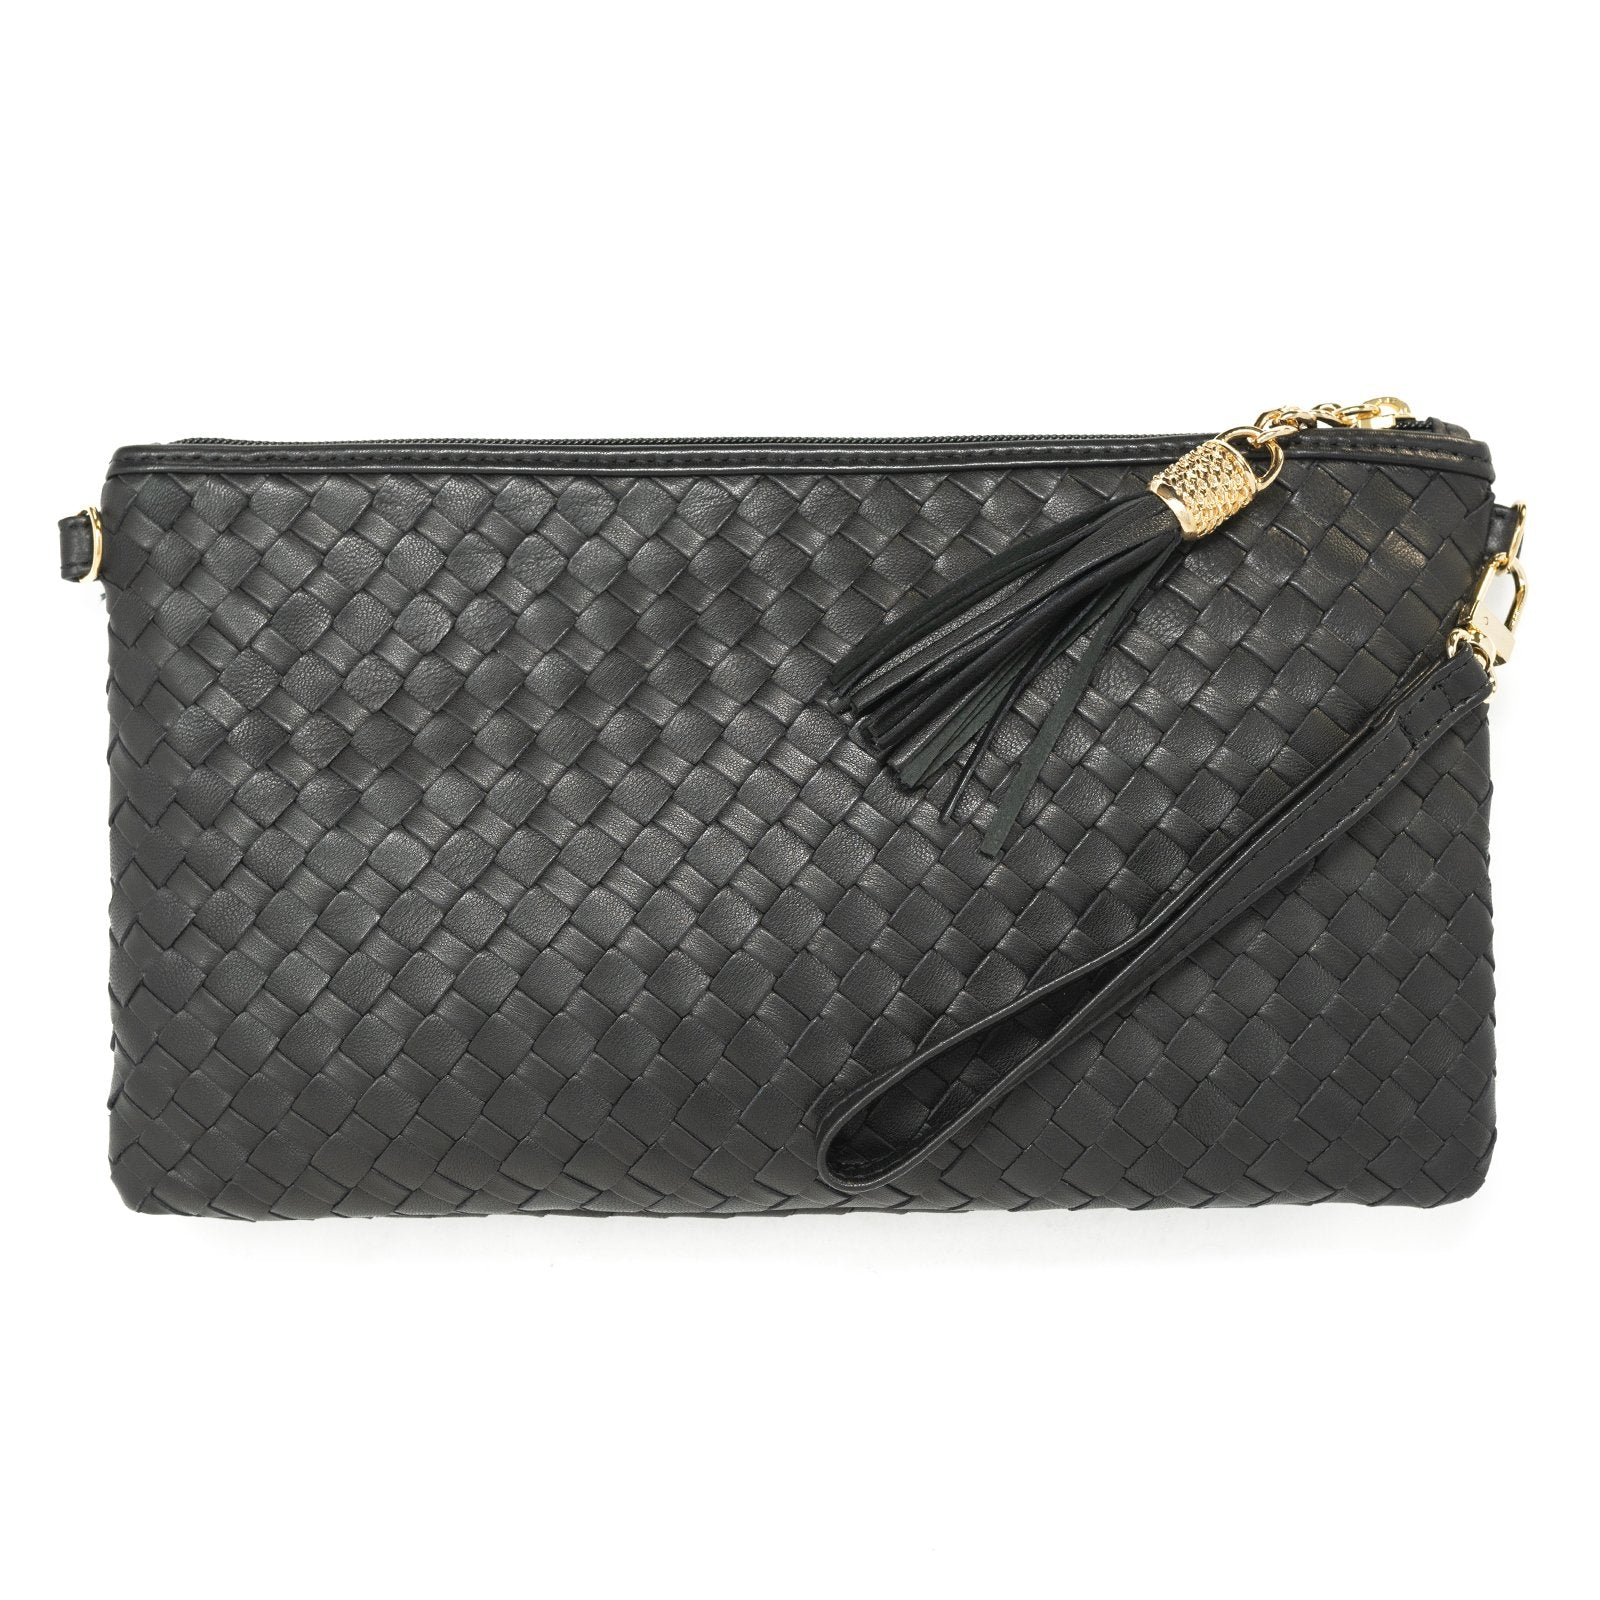 Women Intrecciato Leather Soft Pouch Black Intreccio Quadro - Jennifer Tattanelli